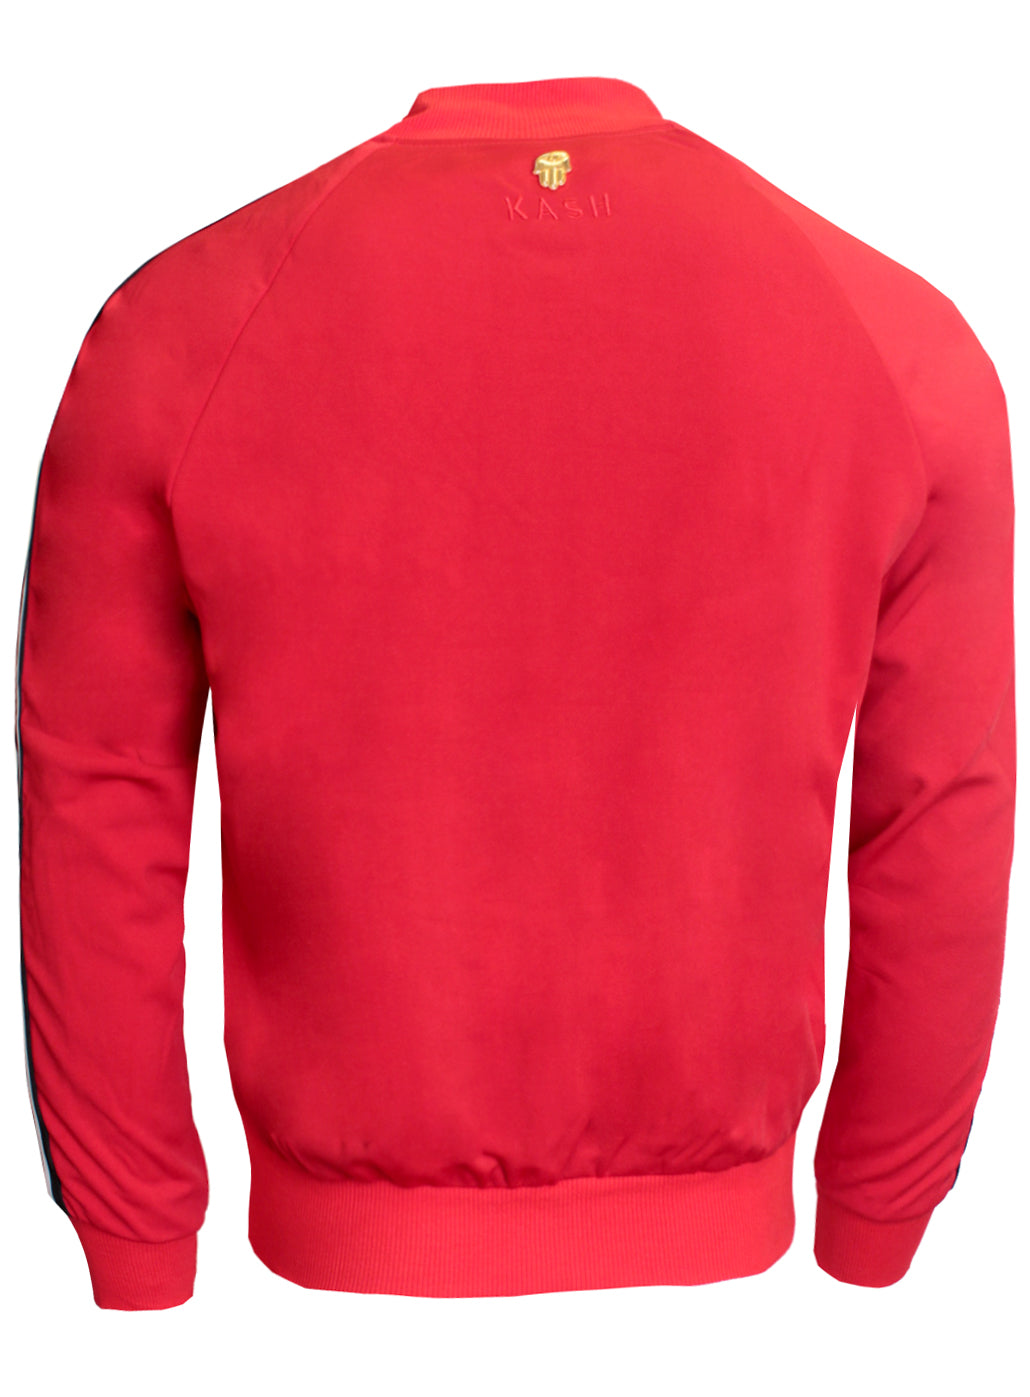 Men's Long Sleeve AF Track Jacket with Side Stripes-Red